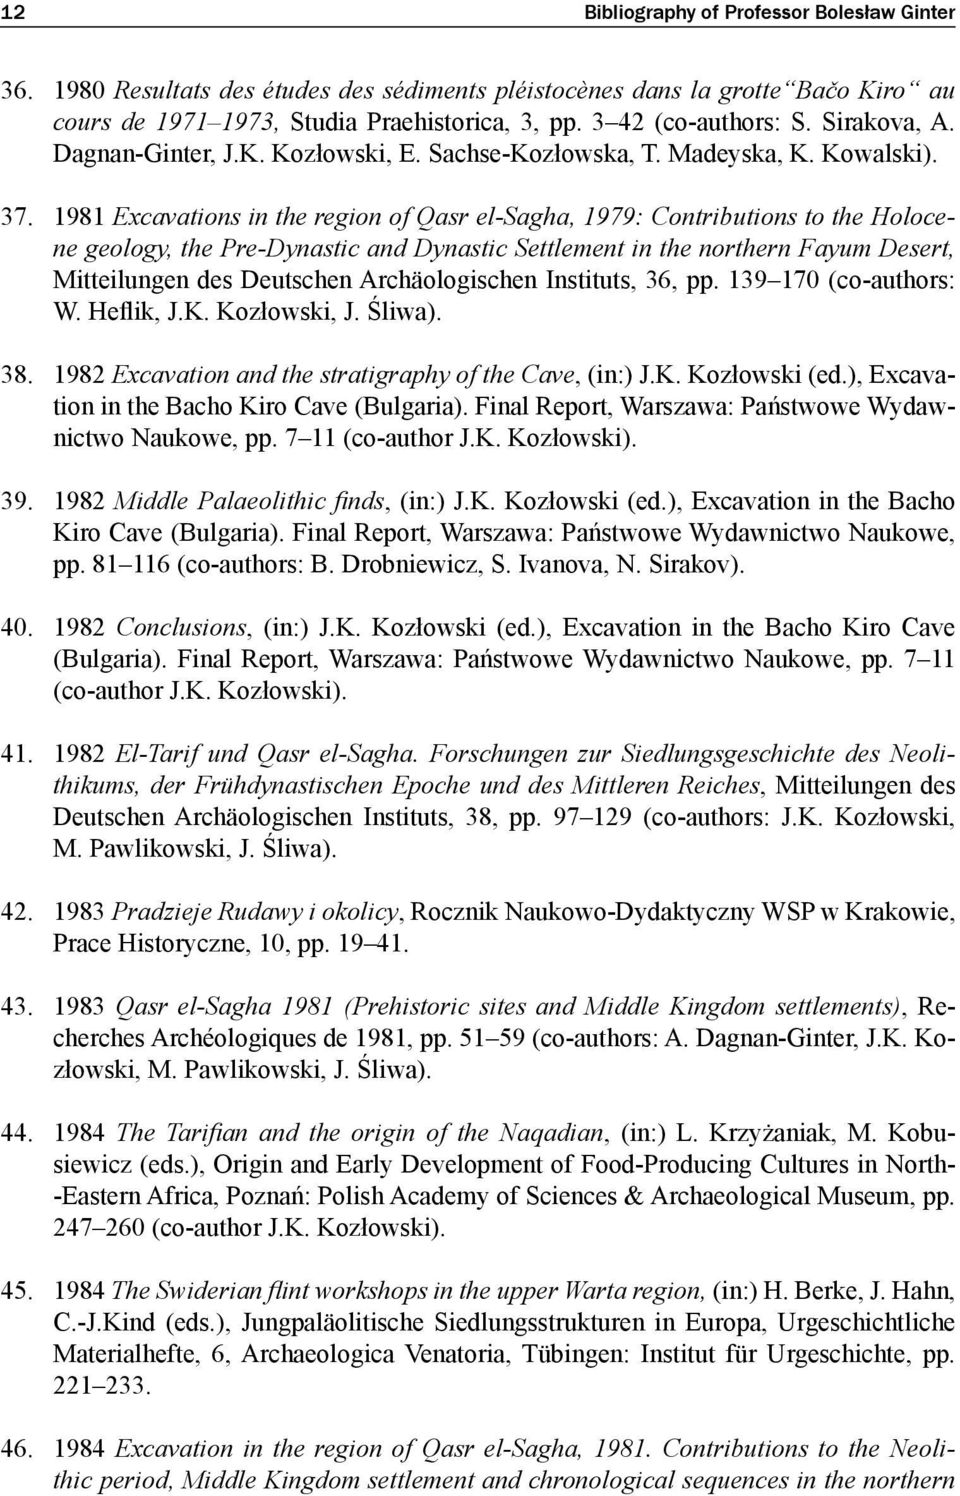 1981 Excavations in the region of Qasr el-sagha, 1979: Contributions to the Holocene geology, the Pre-Dynastic and Dynastic Settlement in the northern Fayum Desert, Mitteilungen des Deutschen